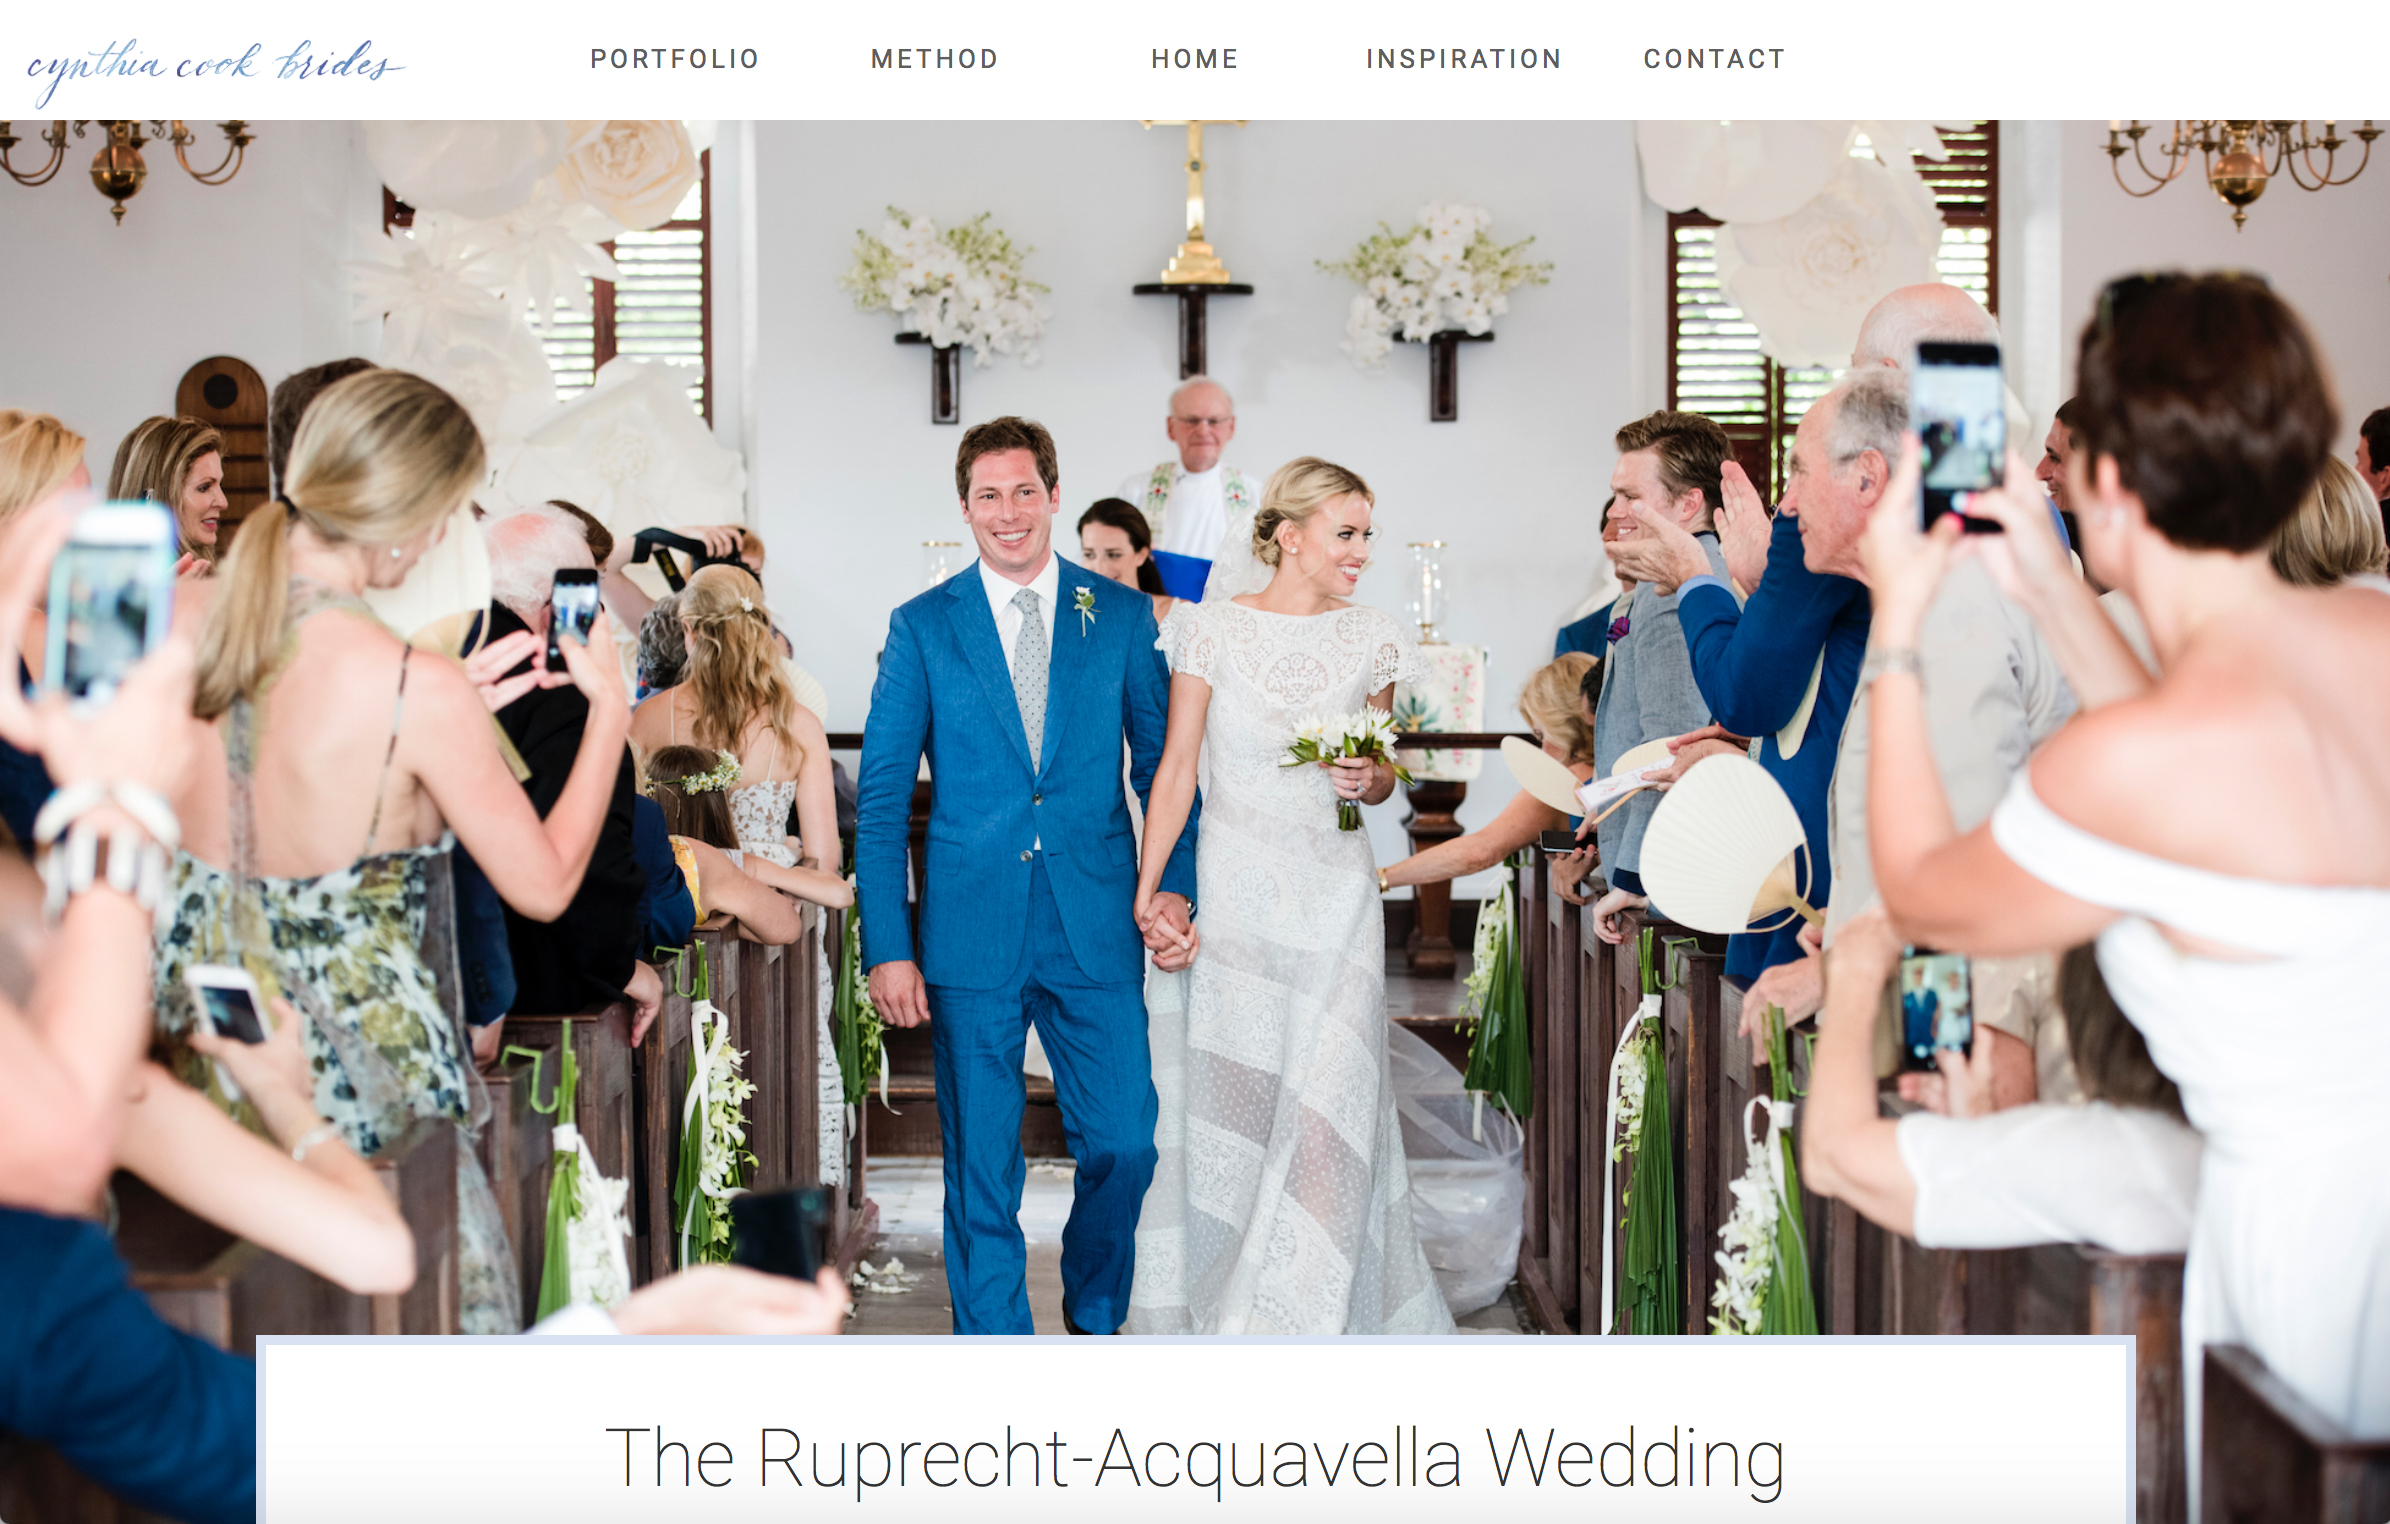 Mollie & Alex - We shot this incredible three day wedding on St. Barth's.